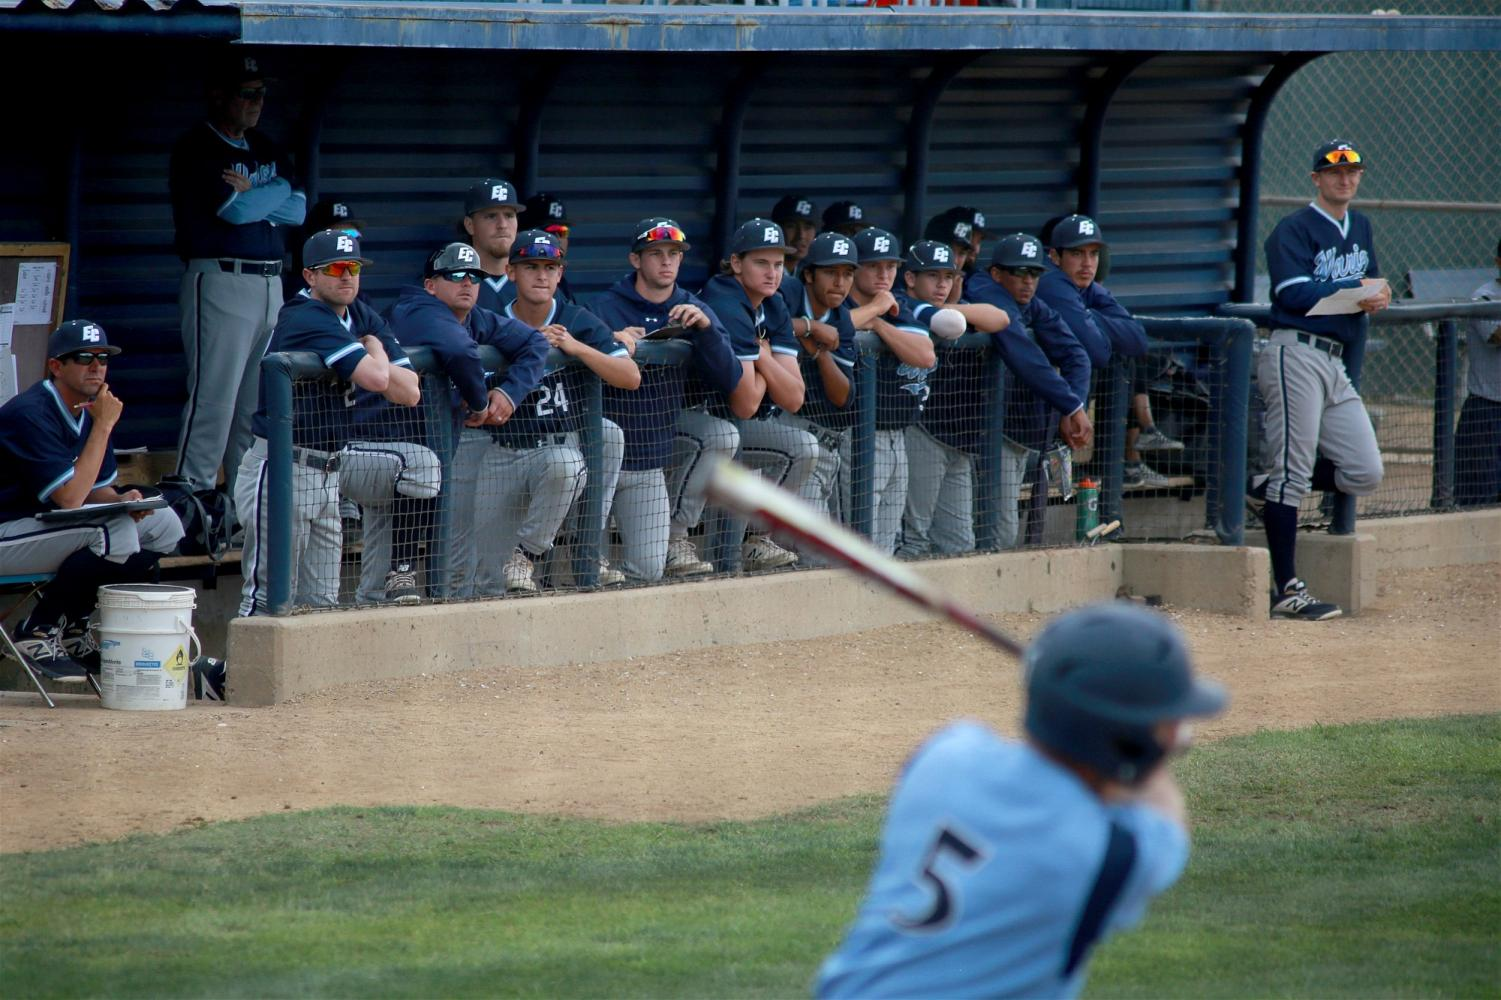 El Camino Warriors players watch Cypress Chargers catcher Eric Bigani up at the plate during Game 2 of their playoff series on Friday, May 10. The Chargers forced Game 3 for Saturday, May 11. Photo credit: Mari Inagaki